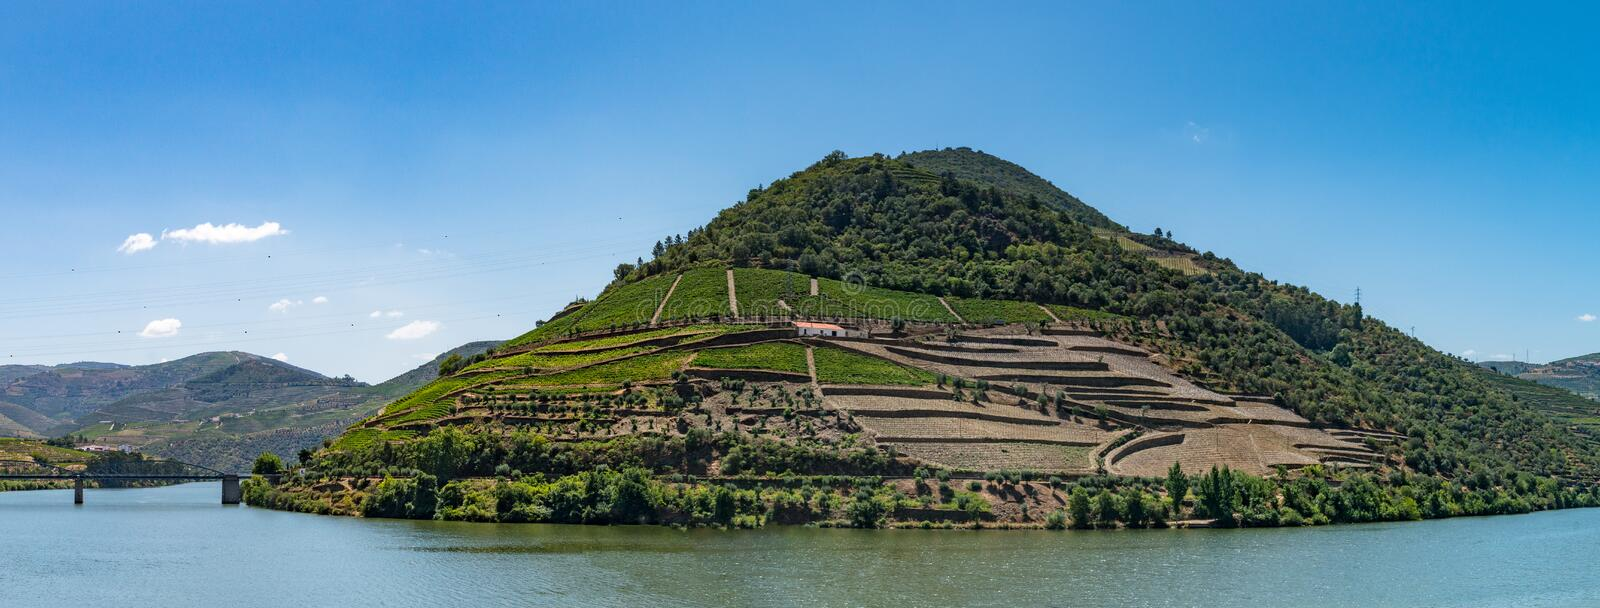 Point of view shot of terraced vineyards in Douro Valley. Point of view shot from historic train in Douro region, Portugal. Features a wide view of terraced royalty free stock images